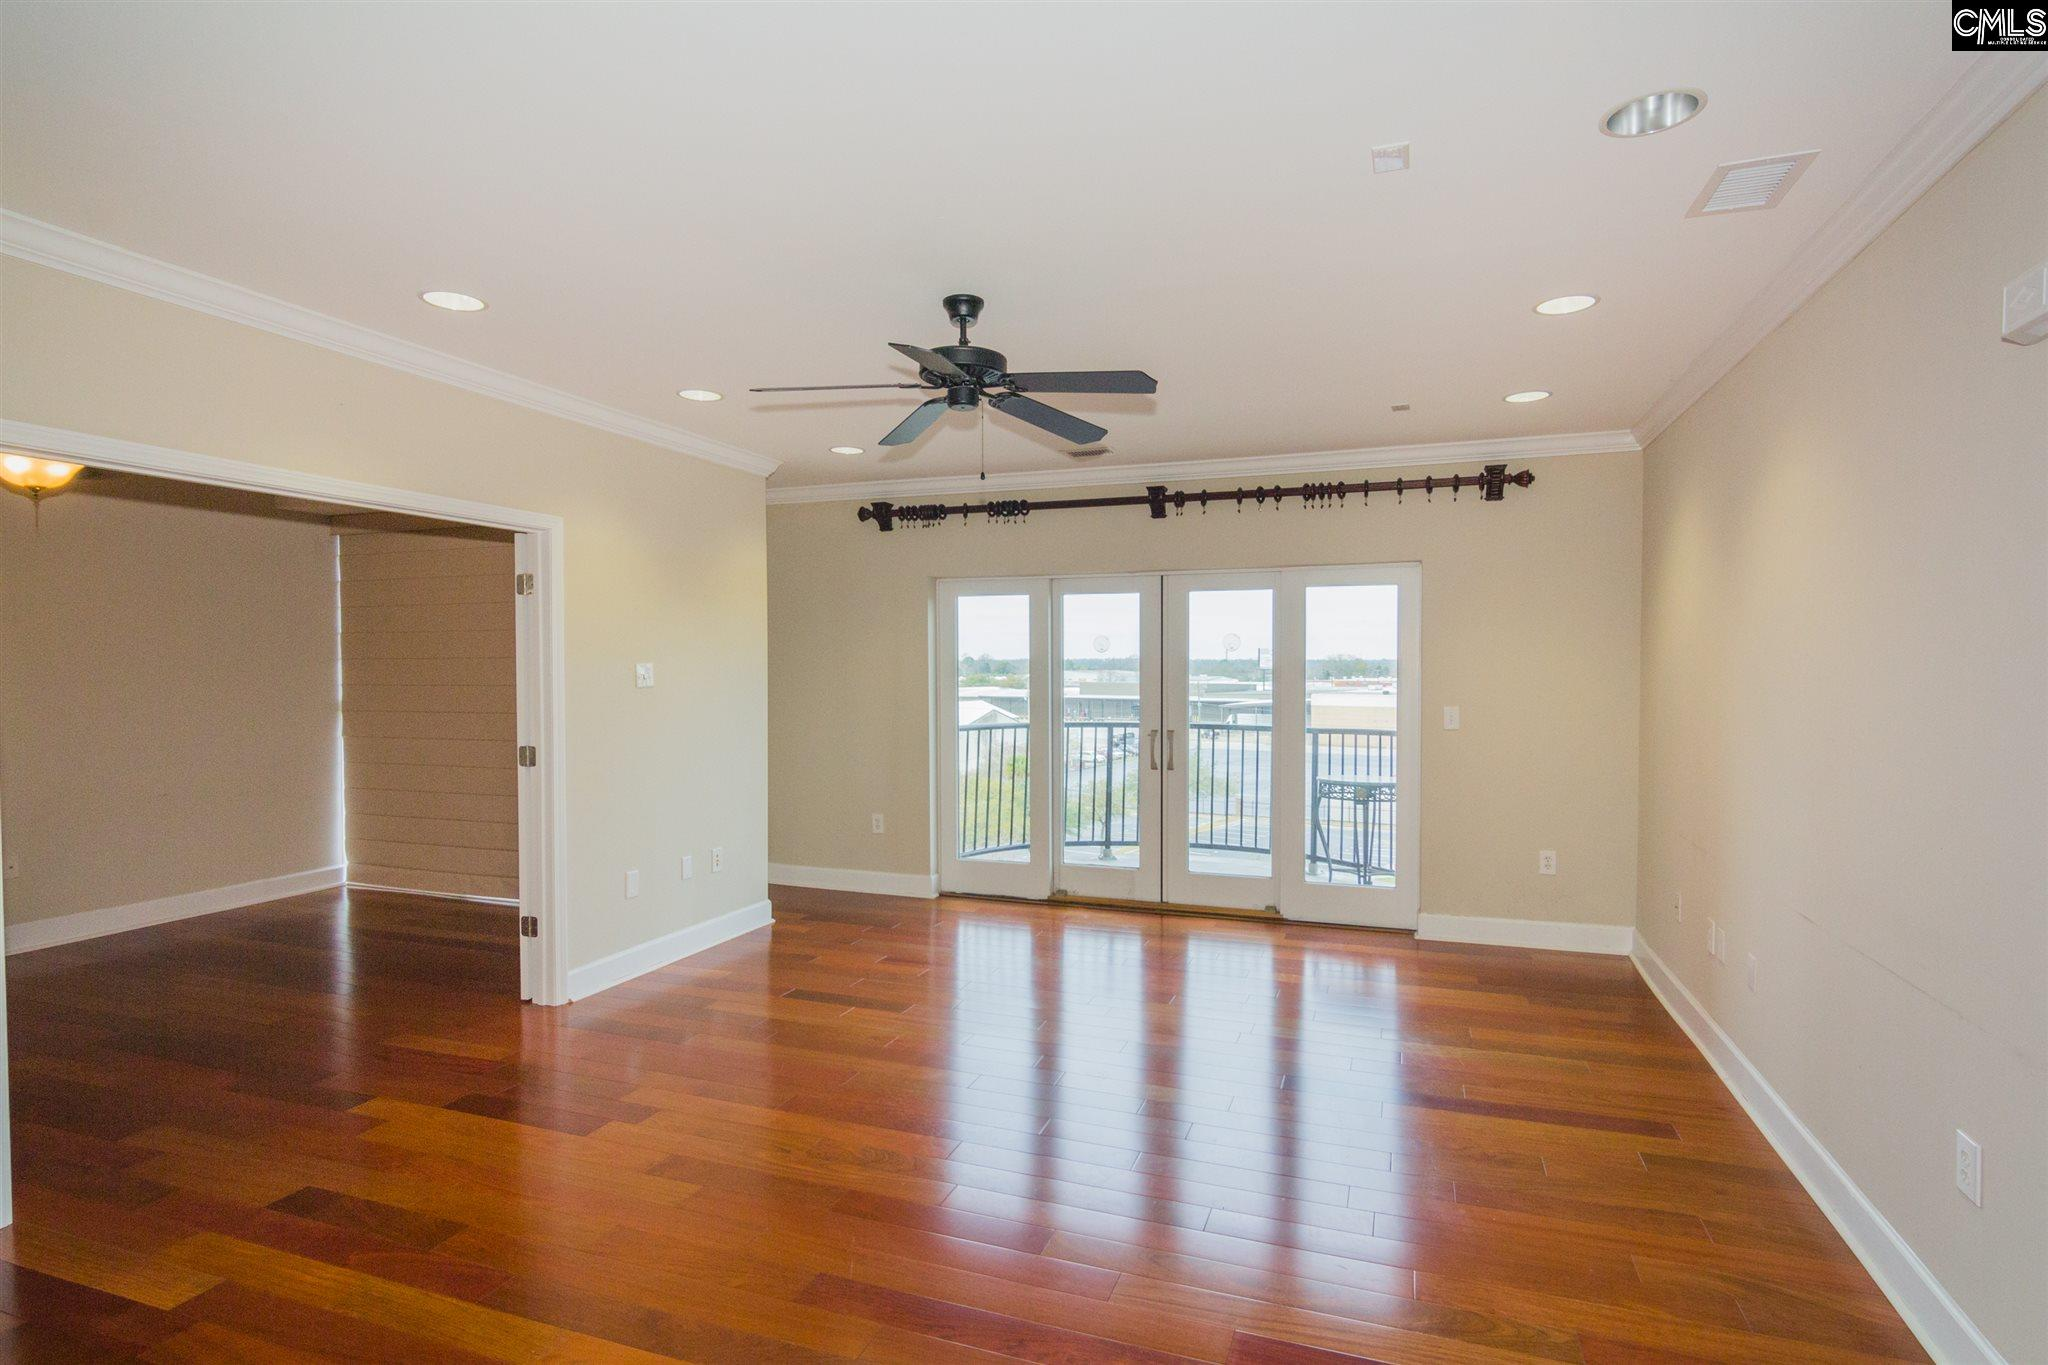 Stunning 2 bedroom 1.5 bath game day unit! Gleaming hardwood floors throughout, granite kitchen countertops with stainless steel appliances and a wet bar. Balcony over looking the city side and Carolina Walk Park. Comes with 2 parking garage spaces. Located just minutes from Downtown, USC, Midlands Tech and major interstates like I-77.